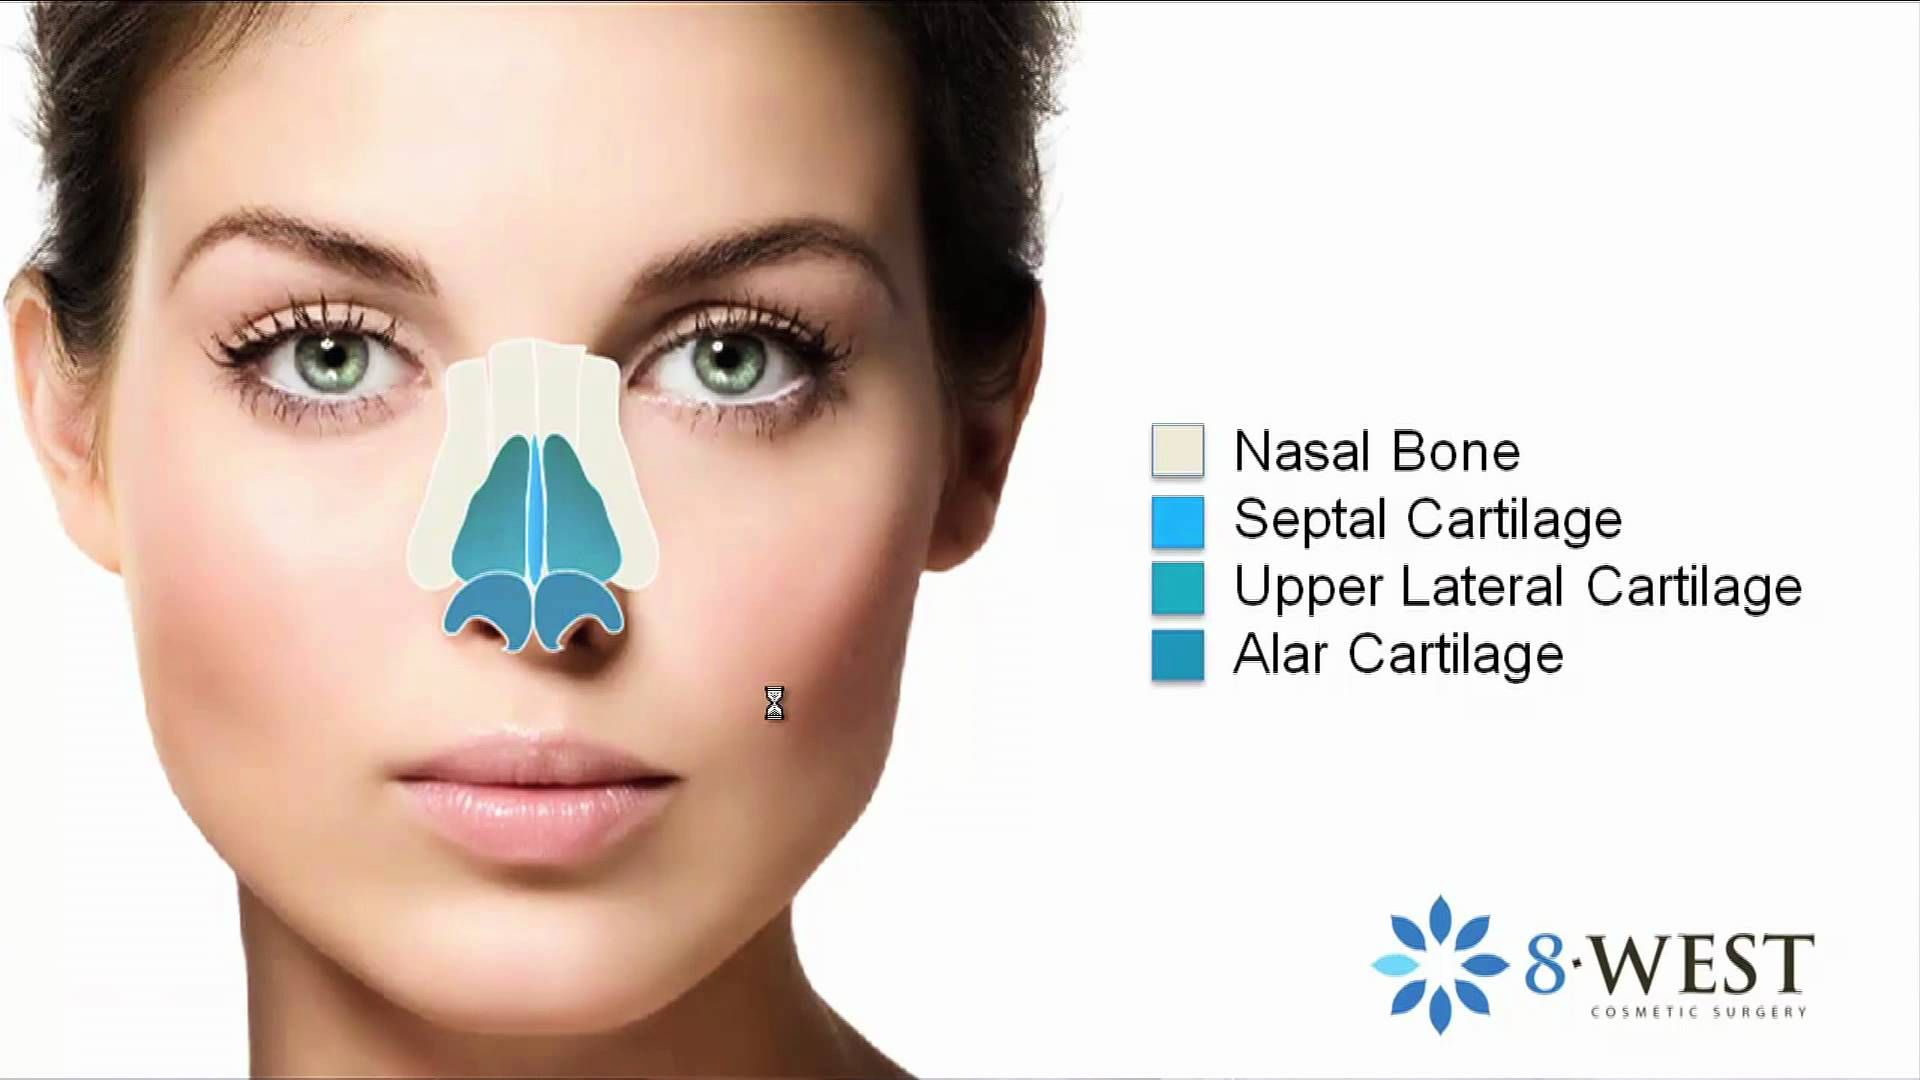 Nasal Anatomy The Nose Anatomy, Form & Function for